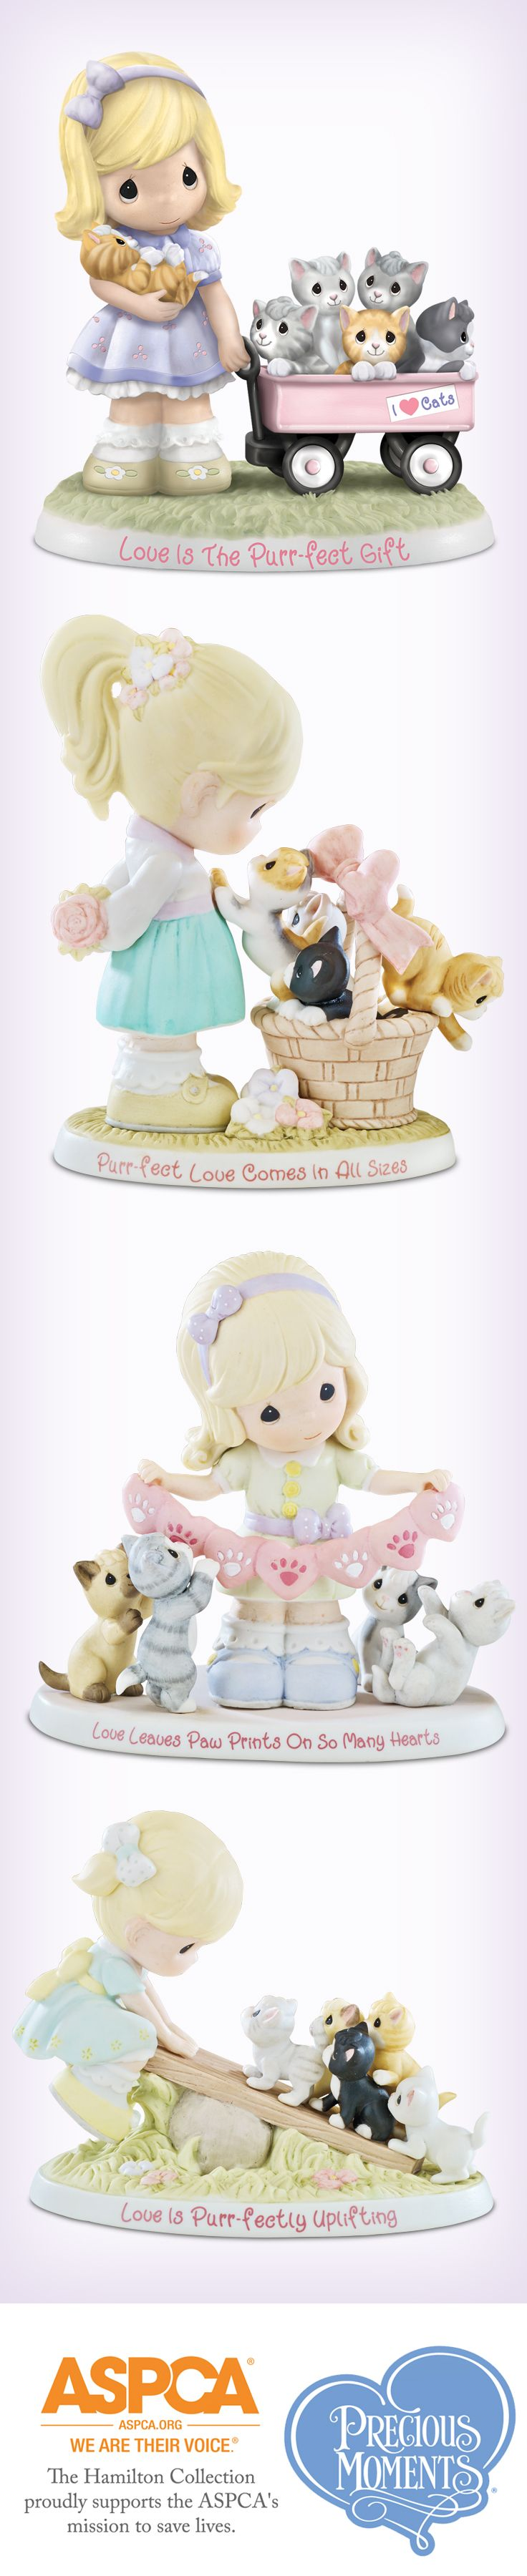 Treat yourself to these Precious Moments figurines for cat lovers - and help support the ASPCA!